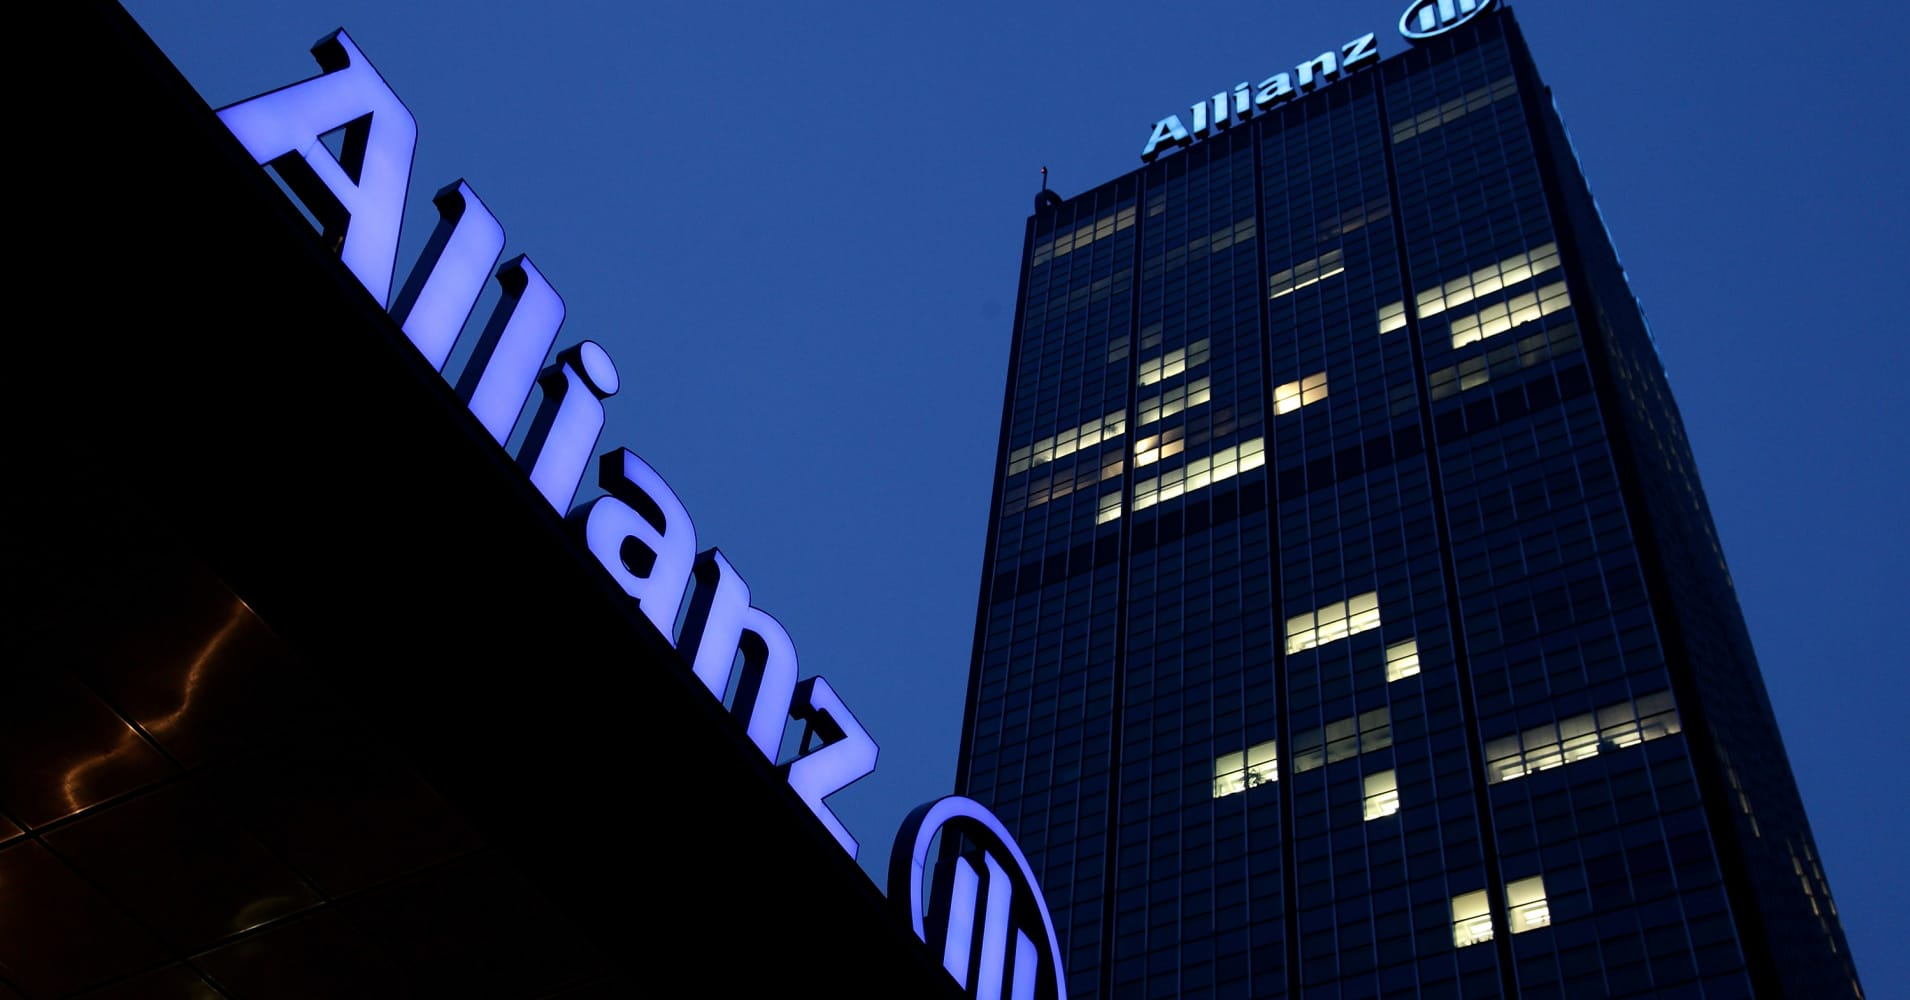 Allianz fourth-quarter net profit up 19 percent, in line with expectations